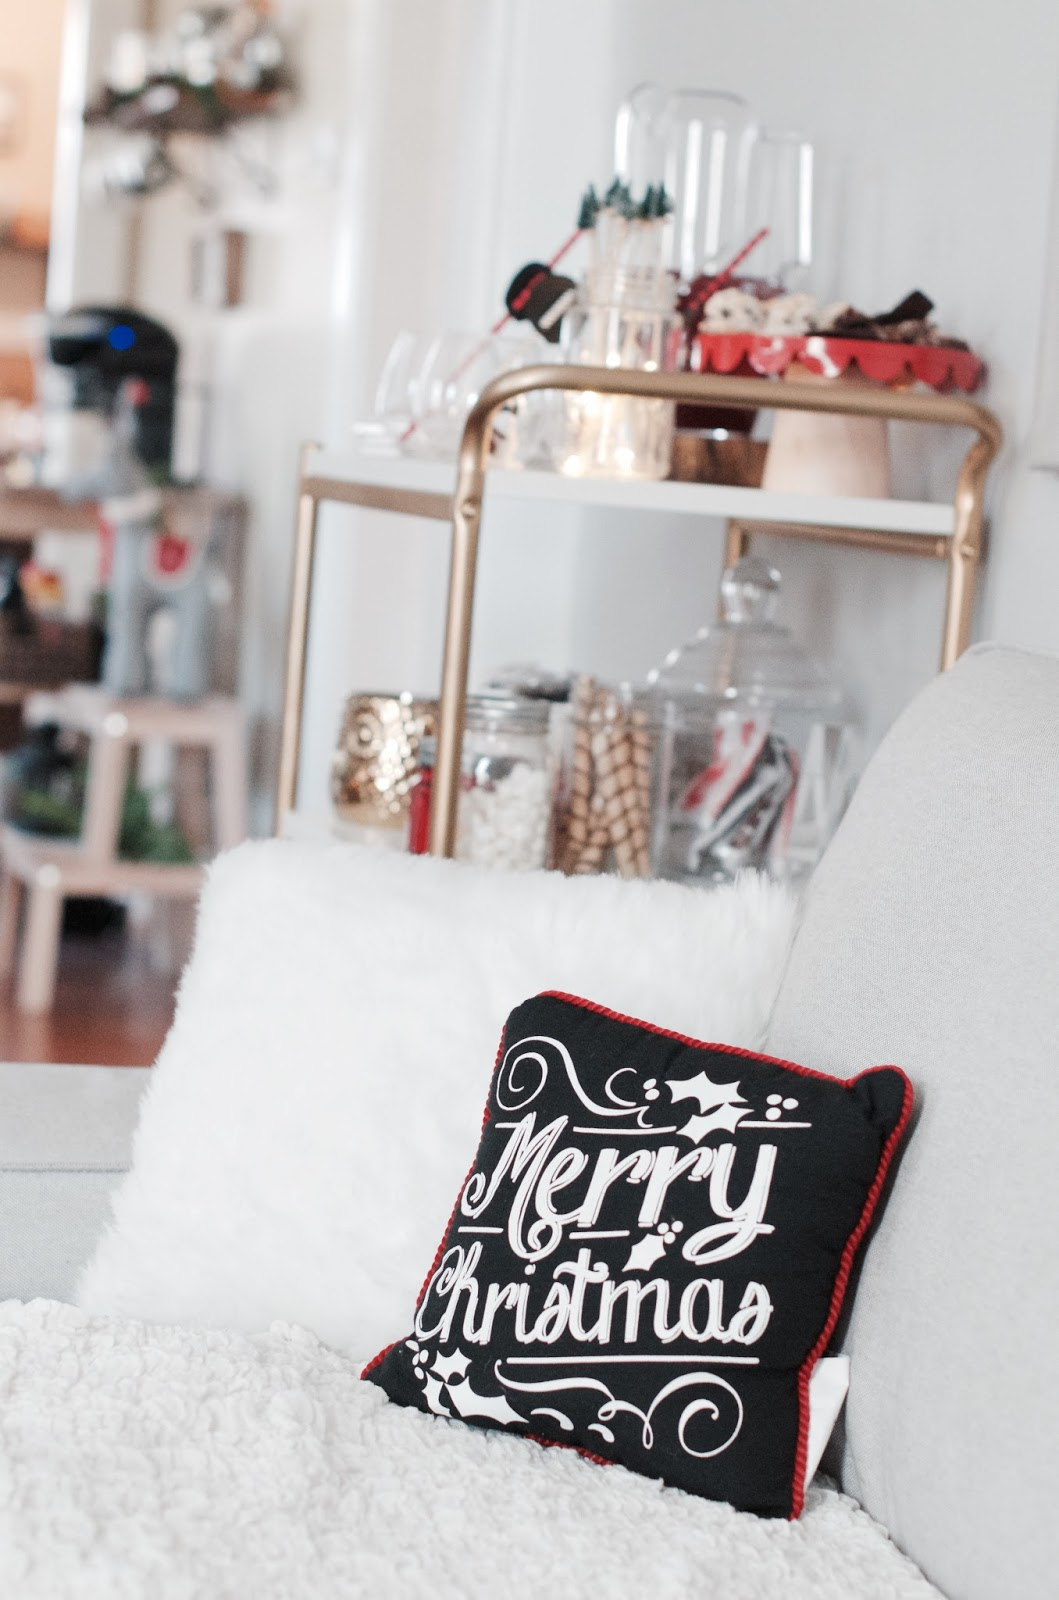 Hosting a Holiday Party + Small Space Decor Ideas | The Style Brunch